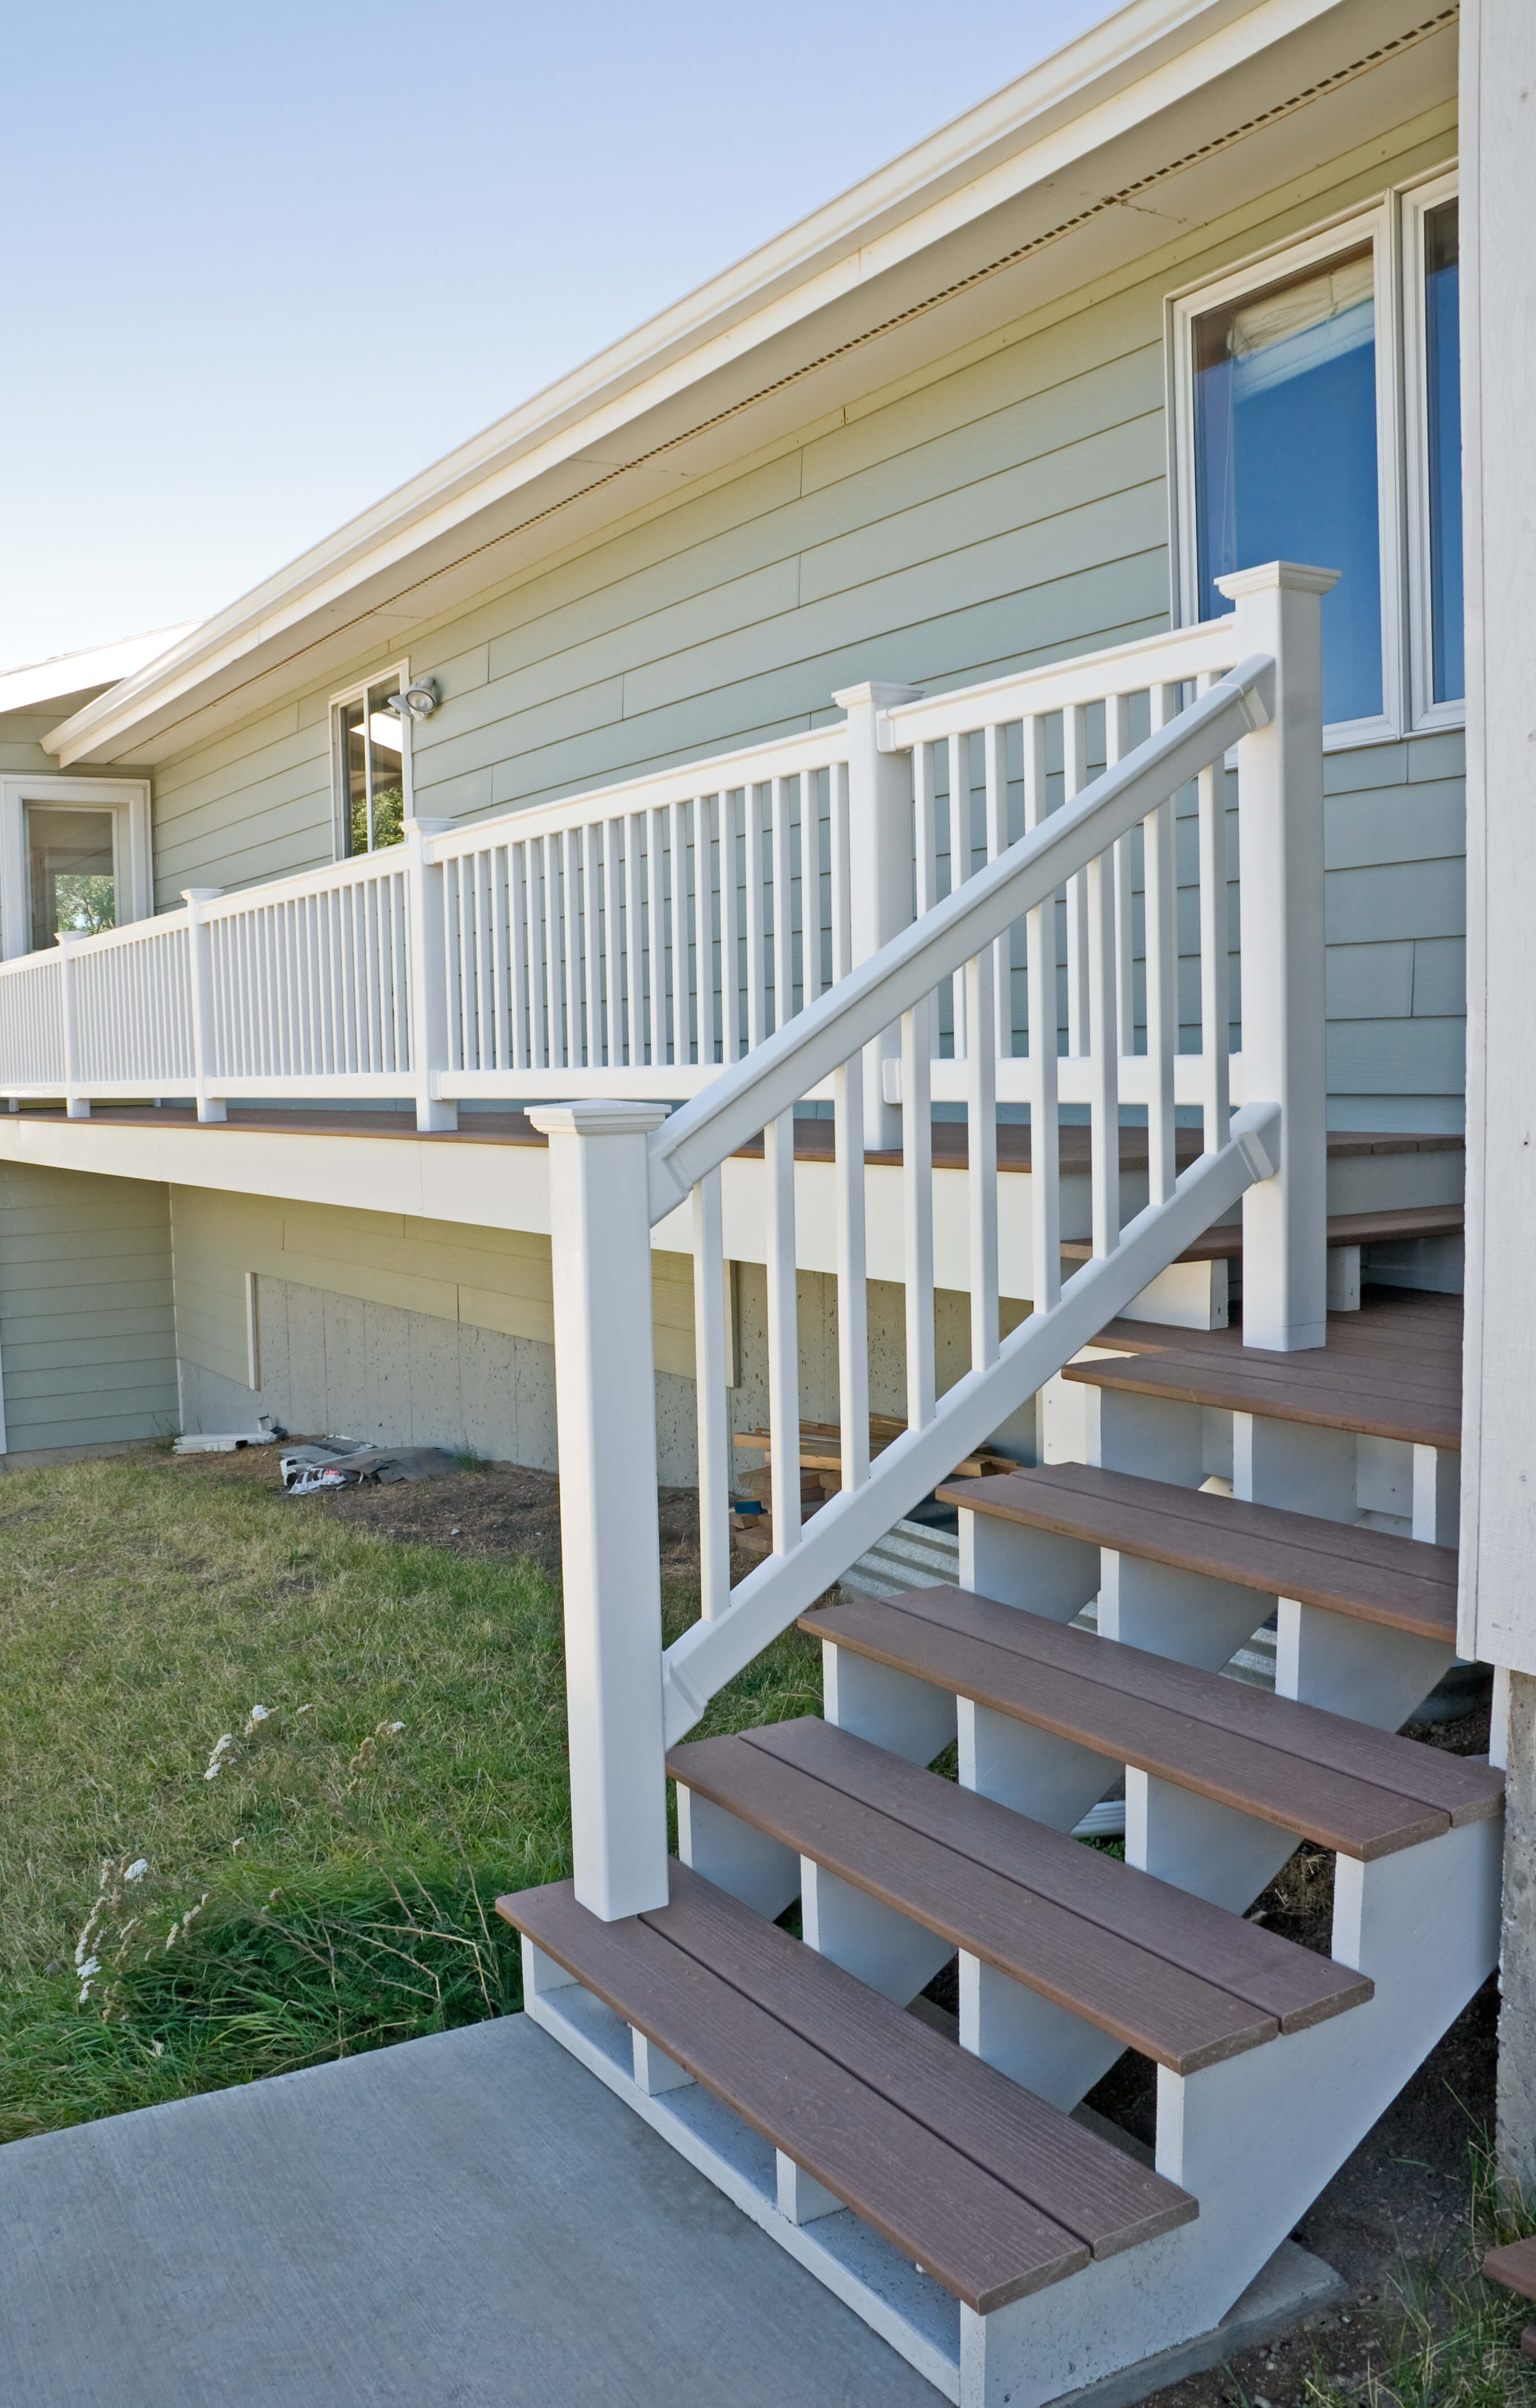 Ideas For Building A Deck (Designs and Plans) - Love Home ...